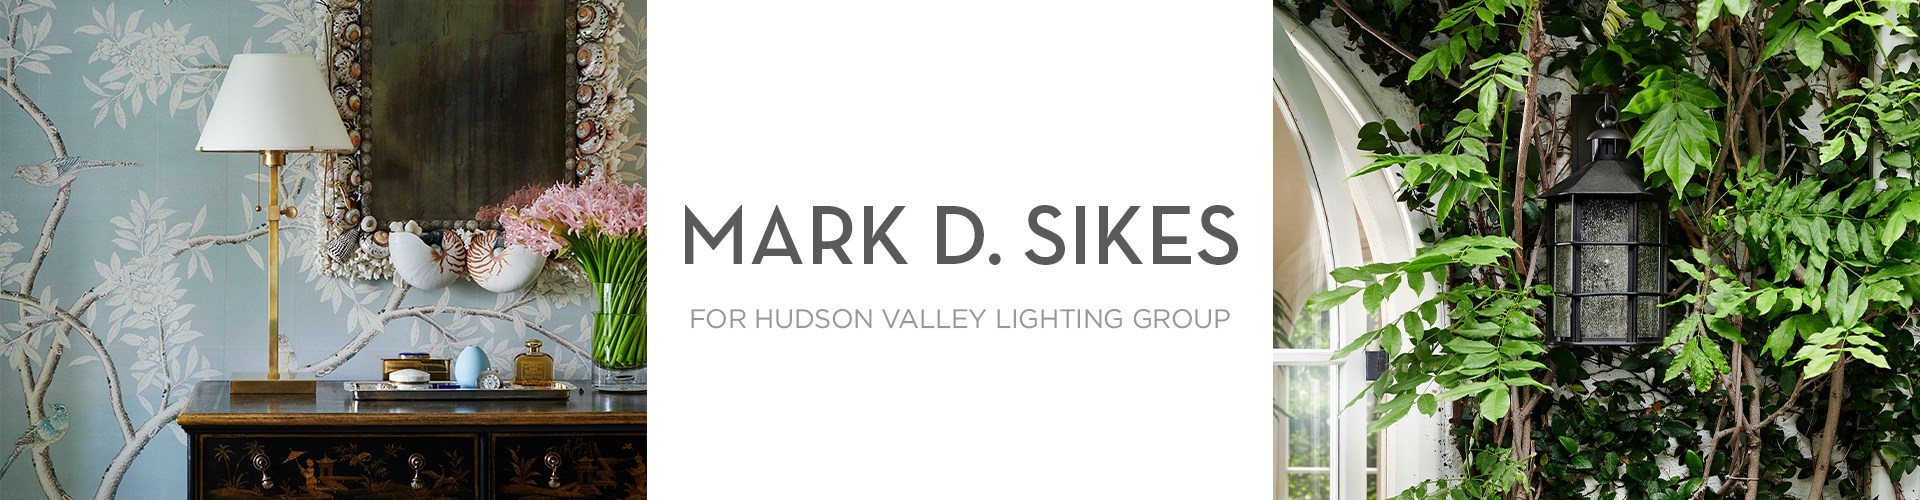 MARK D. SIKES